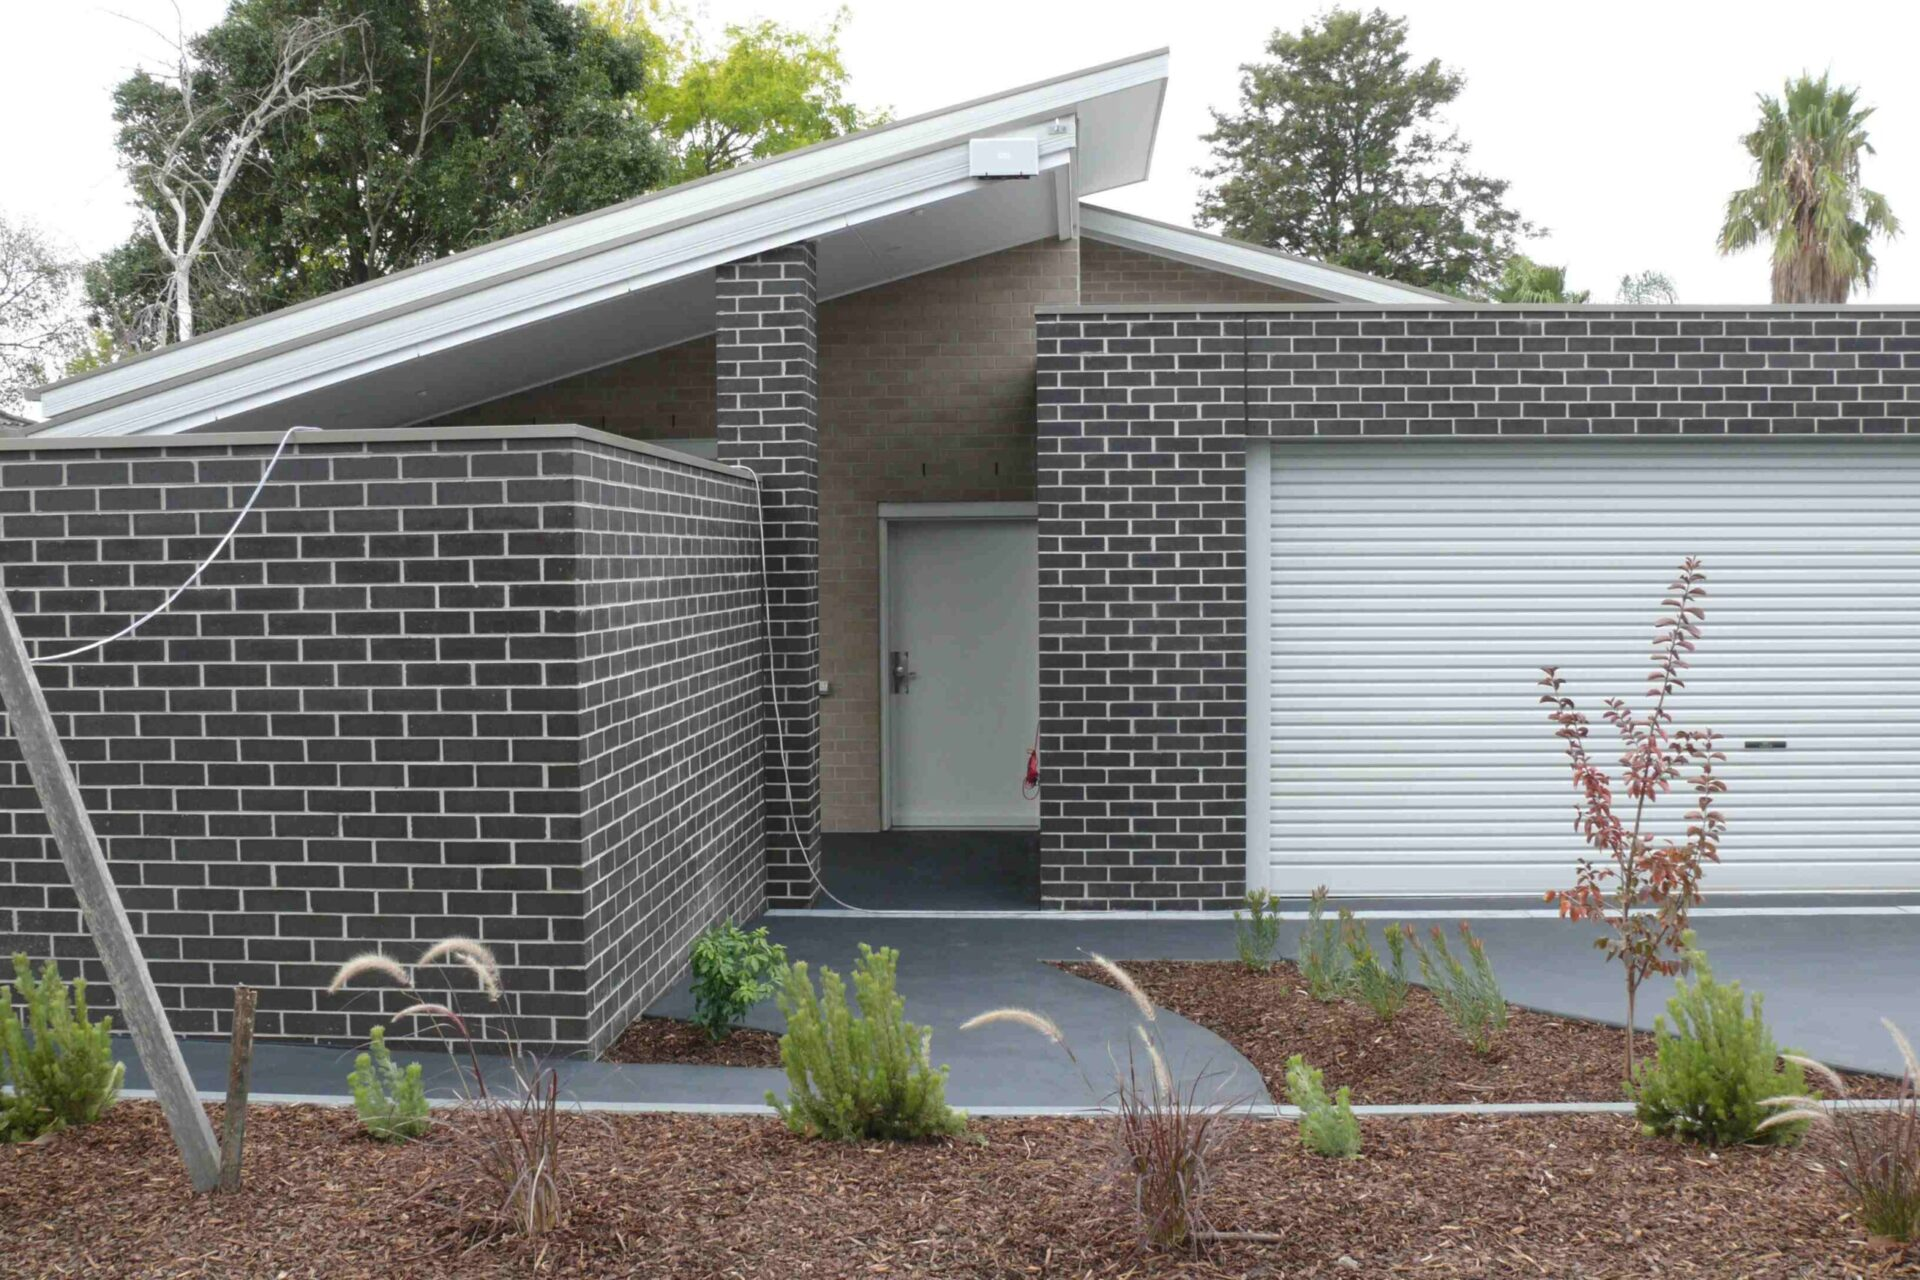 Hotham St Facade News Size Scaled